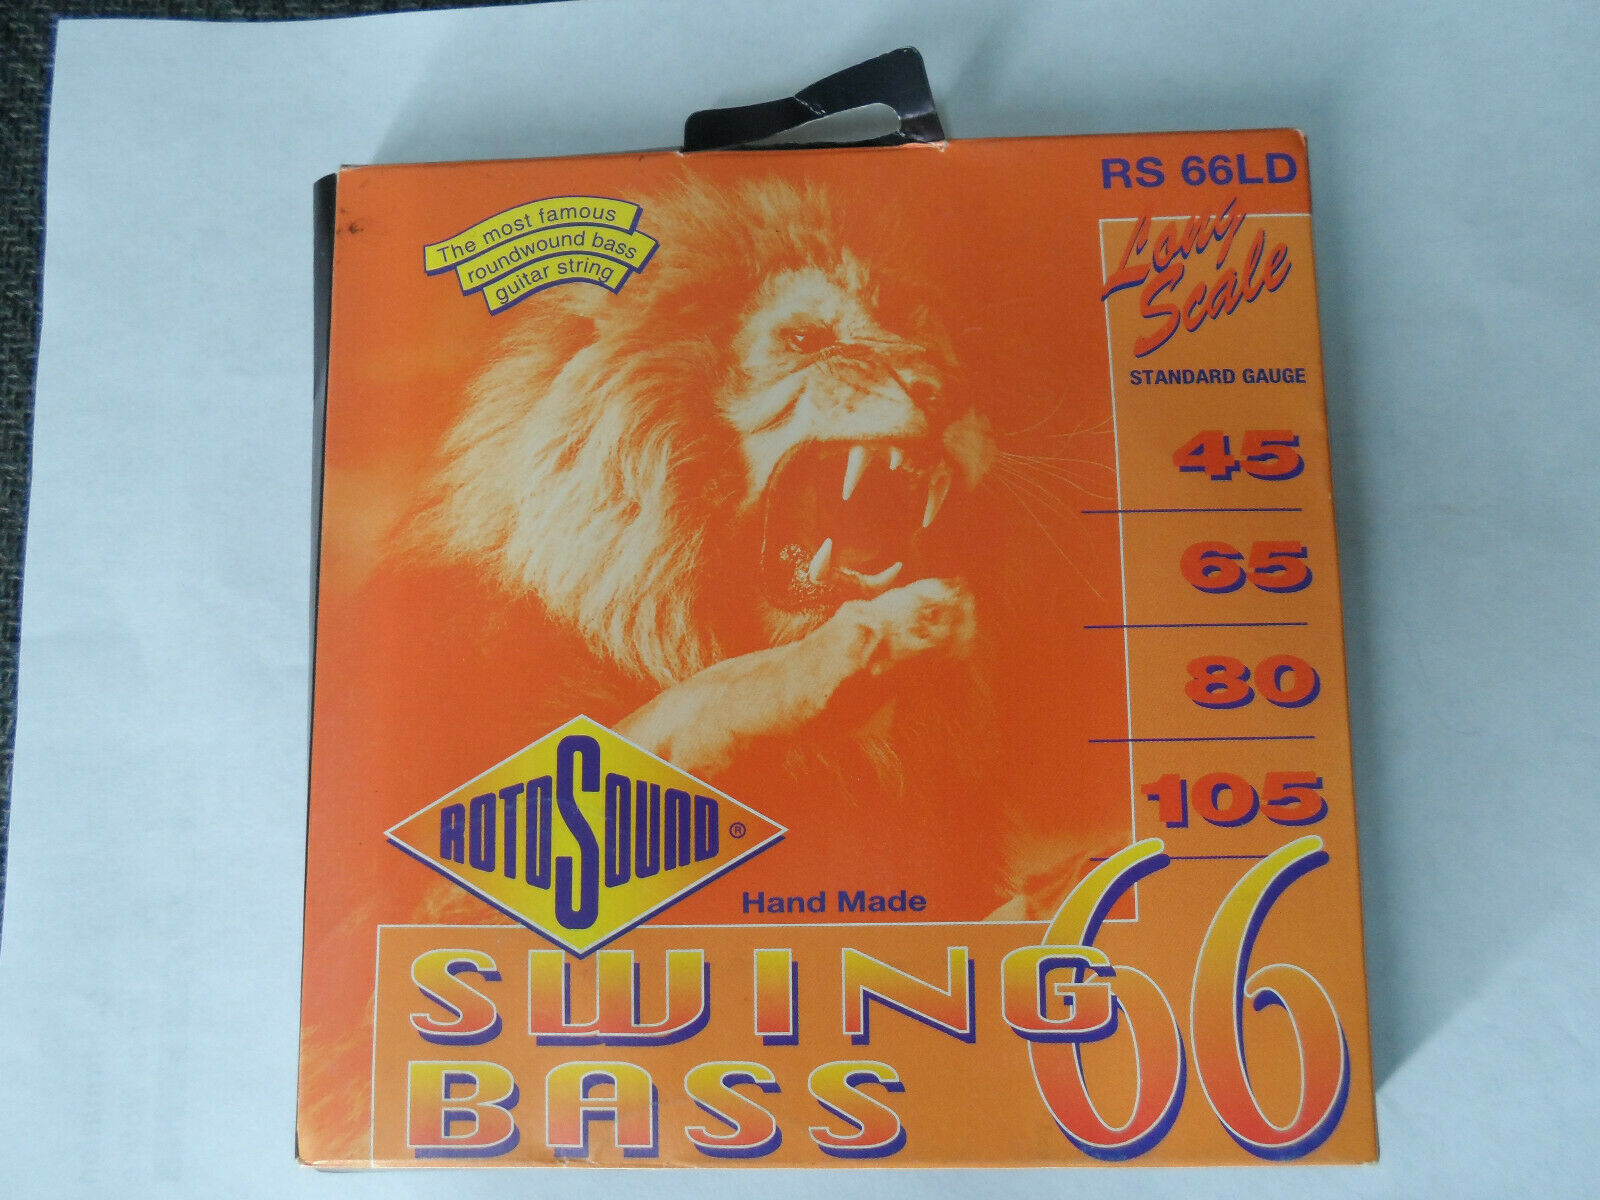 Vintage Rotosound RS 66LD Swing Bass Octave Eight Strings 32-34 In.Genesis